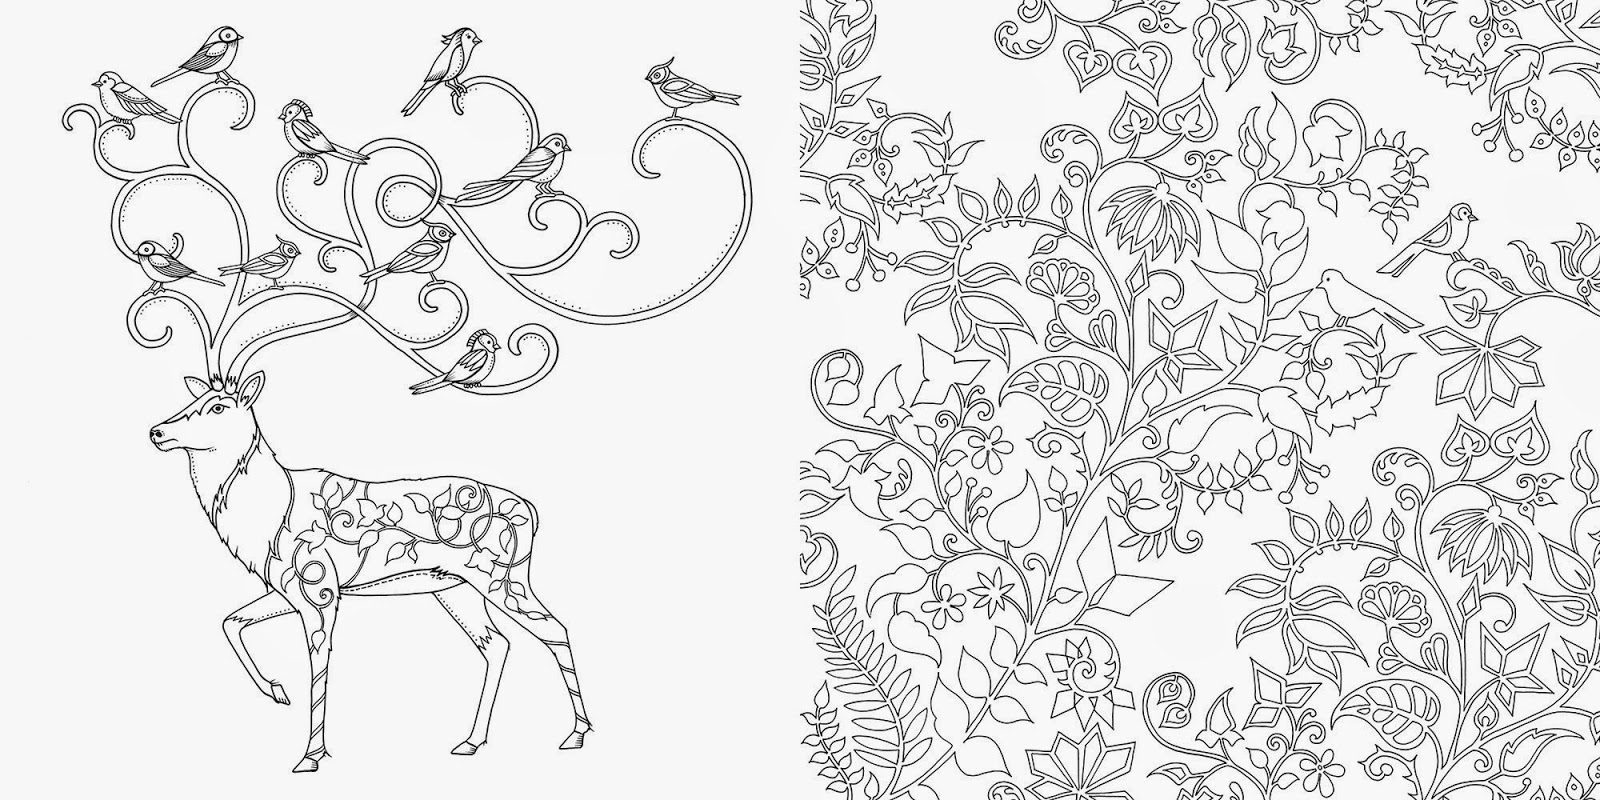 Enchanted forest coloring book website - Art Thursday Enchanted Forest An Inky Quest Coloring Book